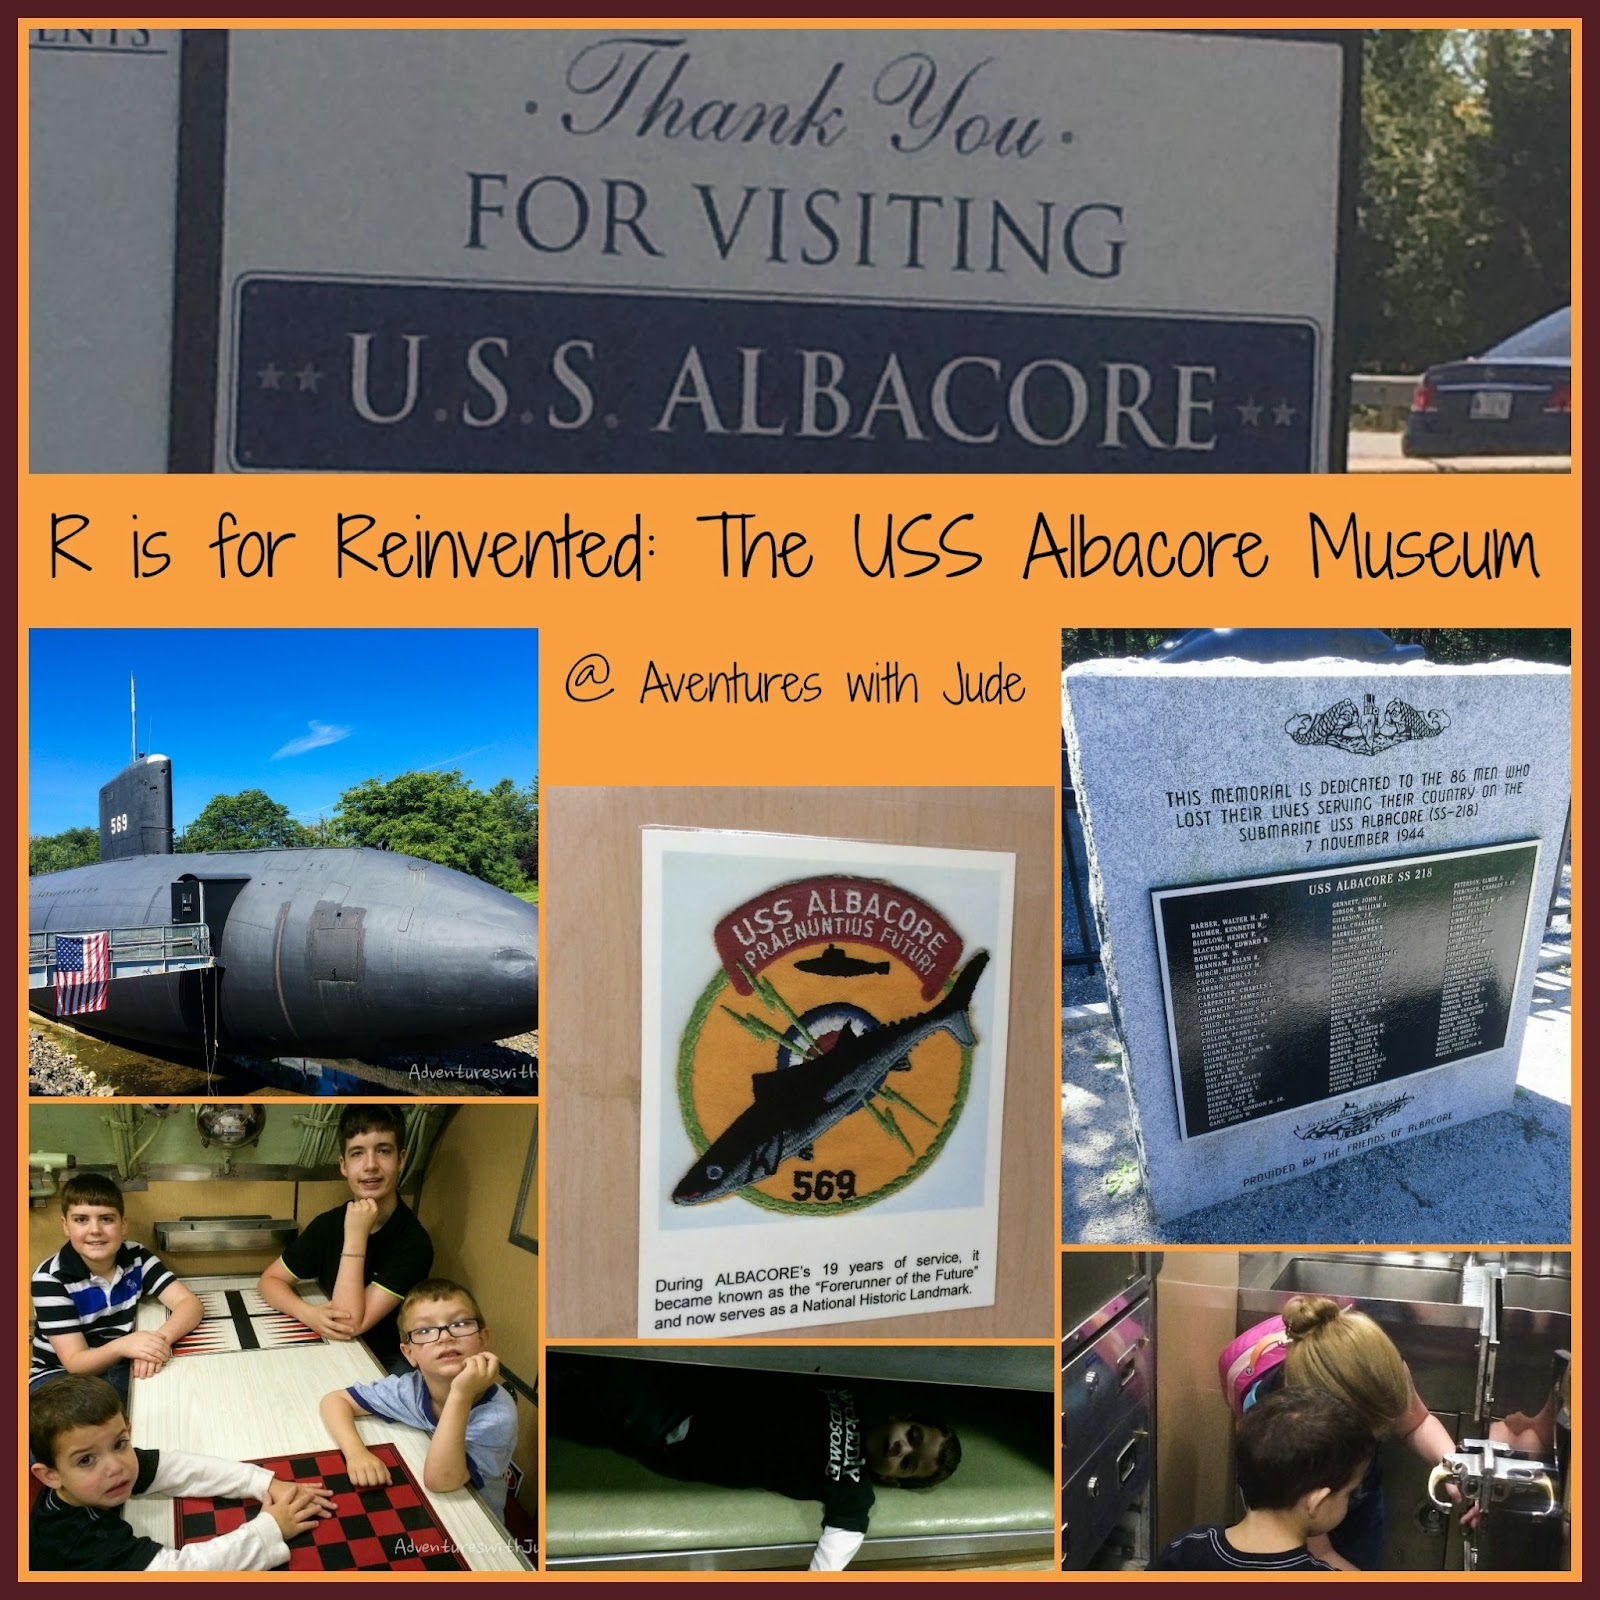 R is for Reinvented: The USS Albacore Museum